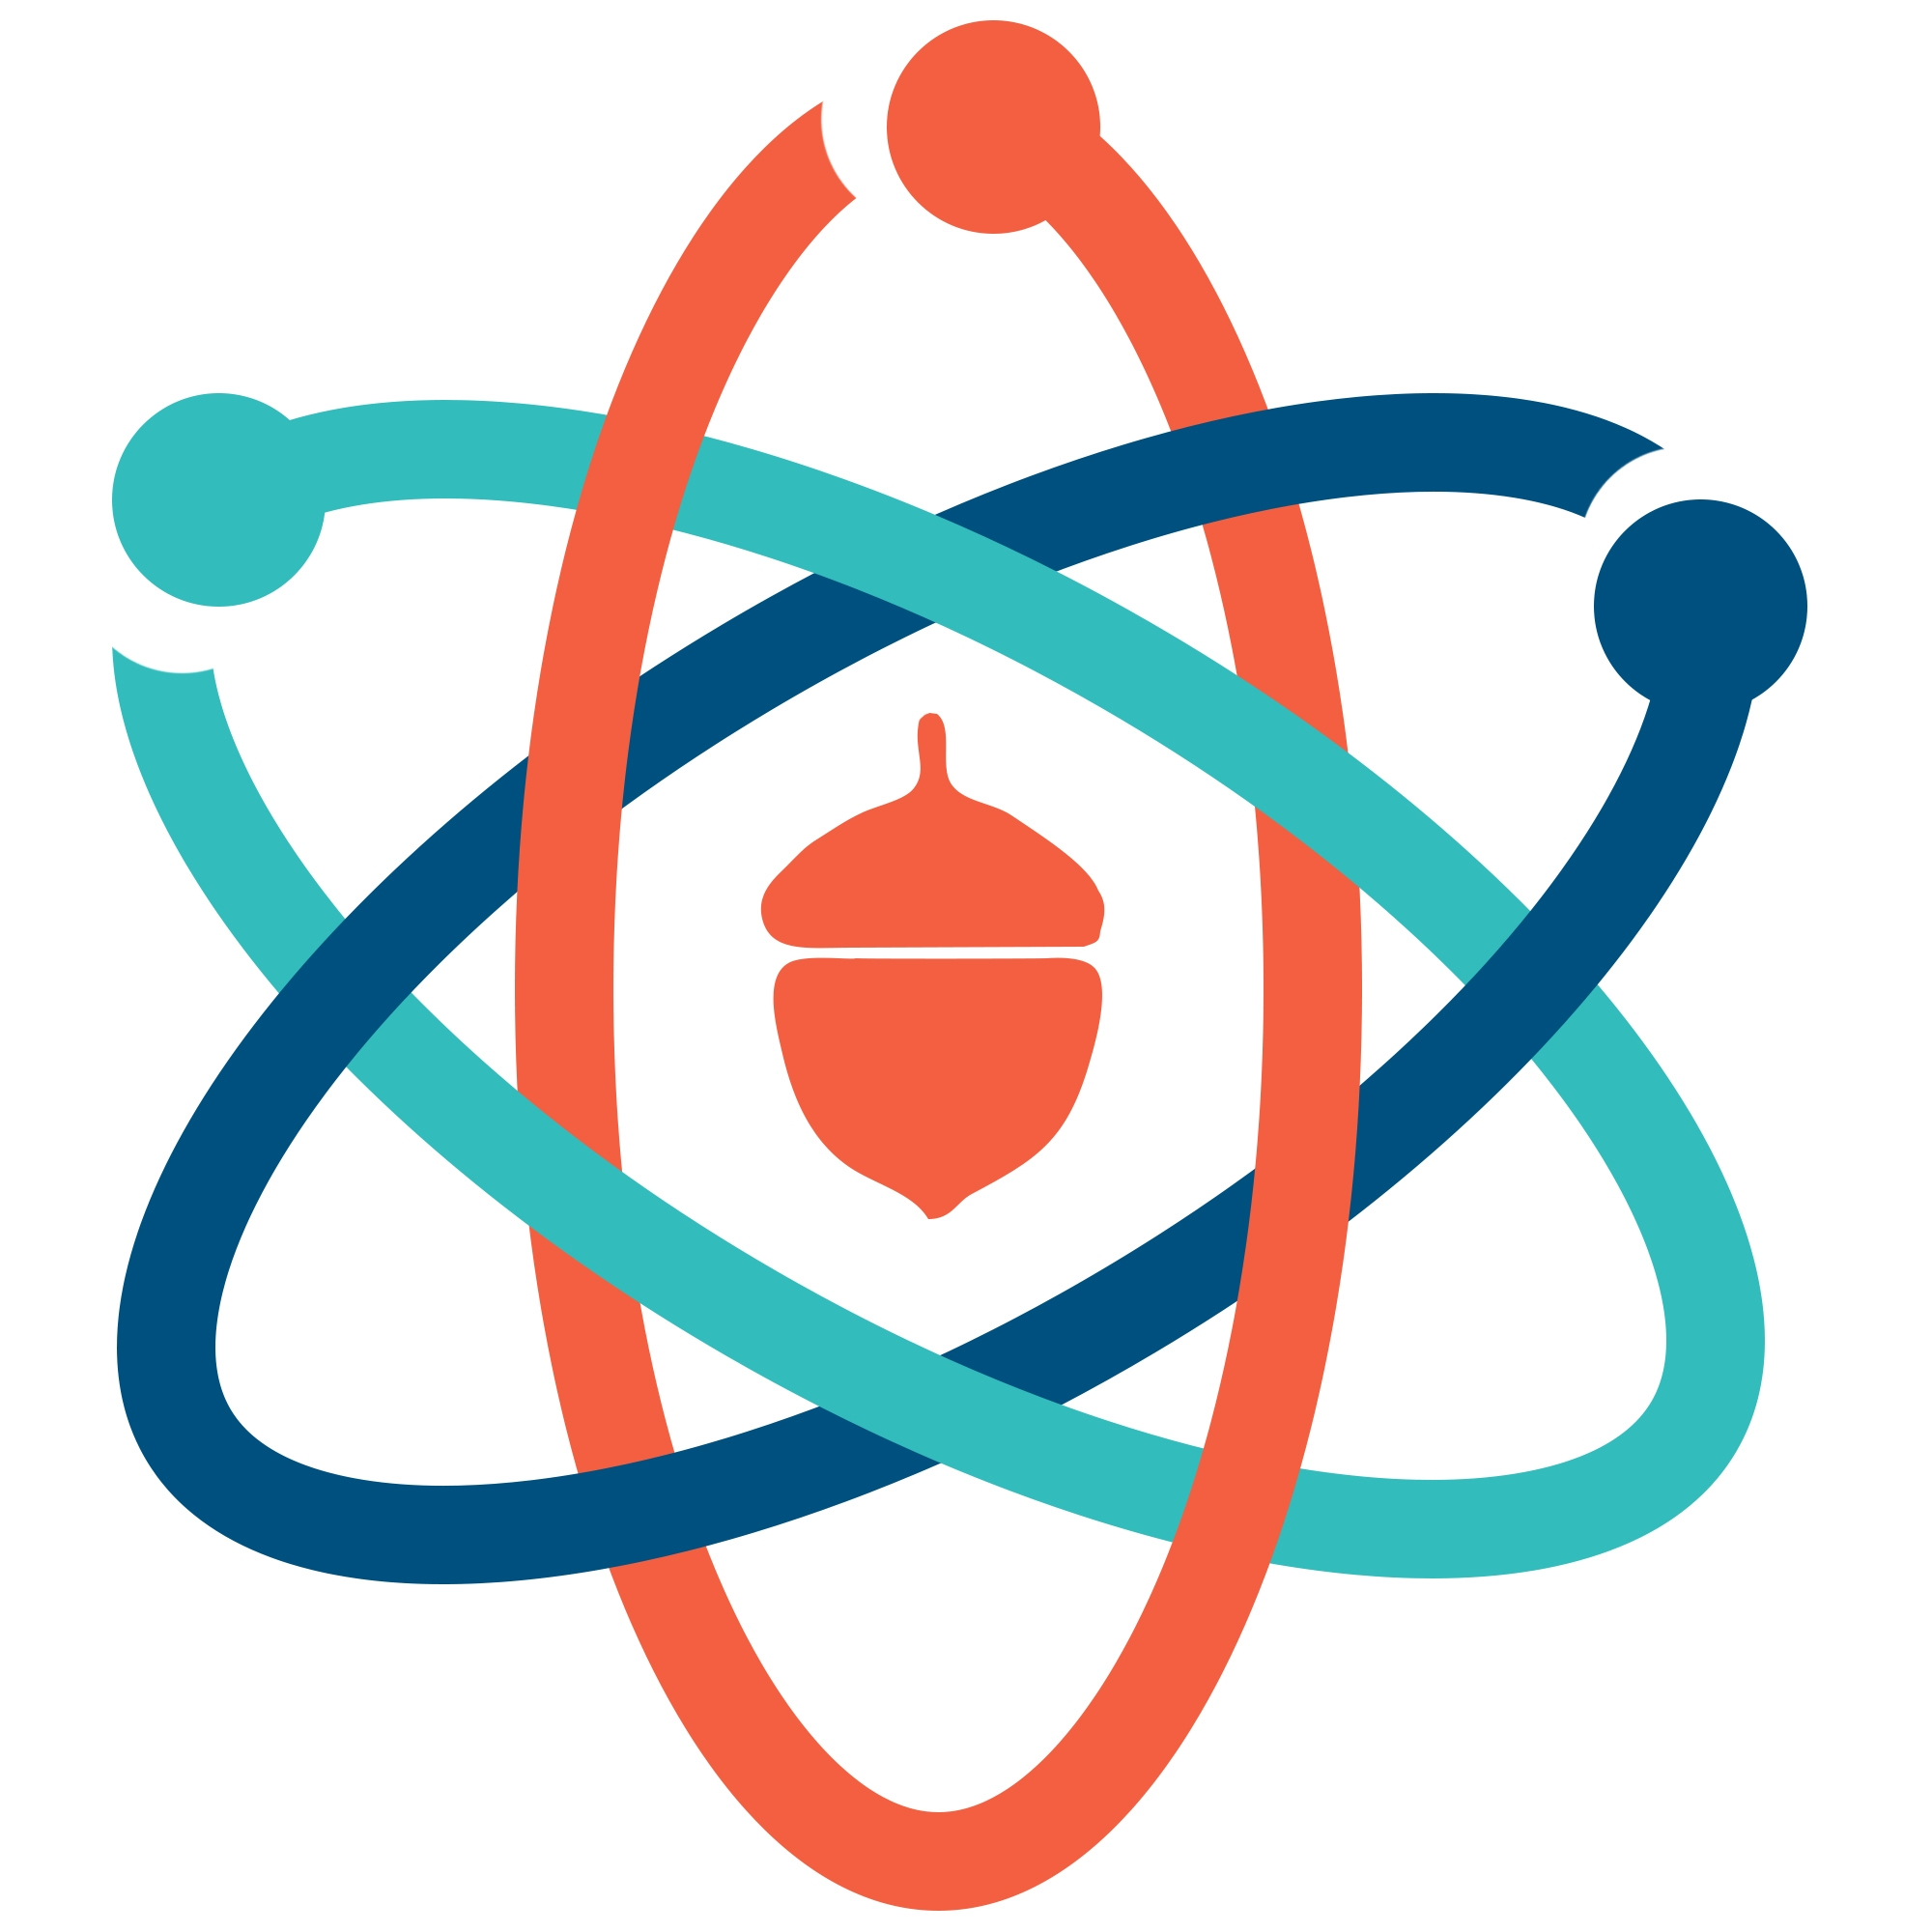 Raleigh March For Science Acorn Logo